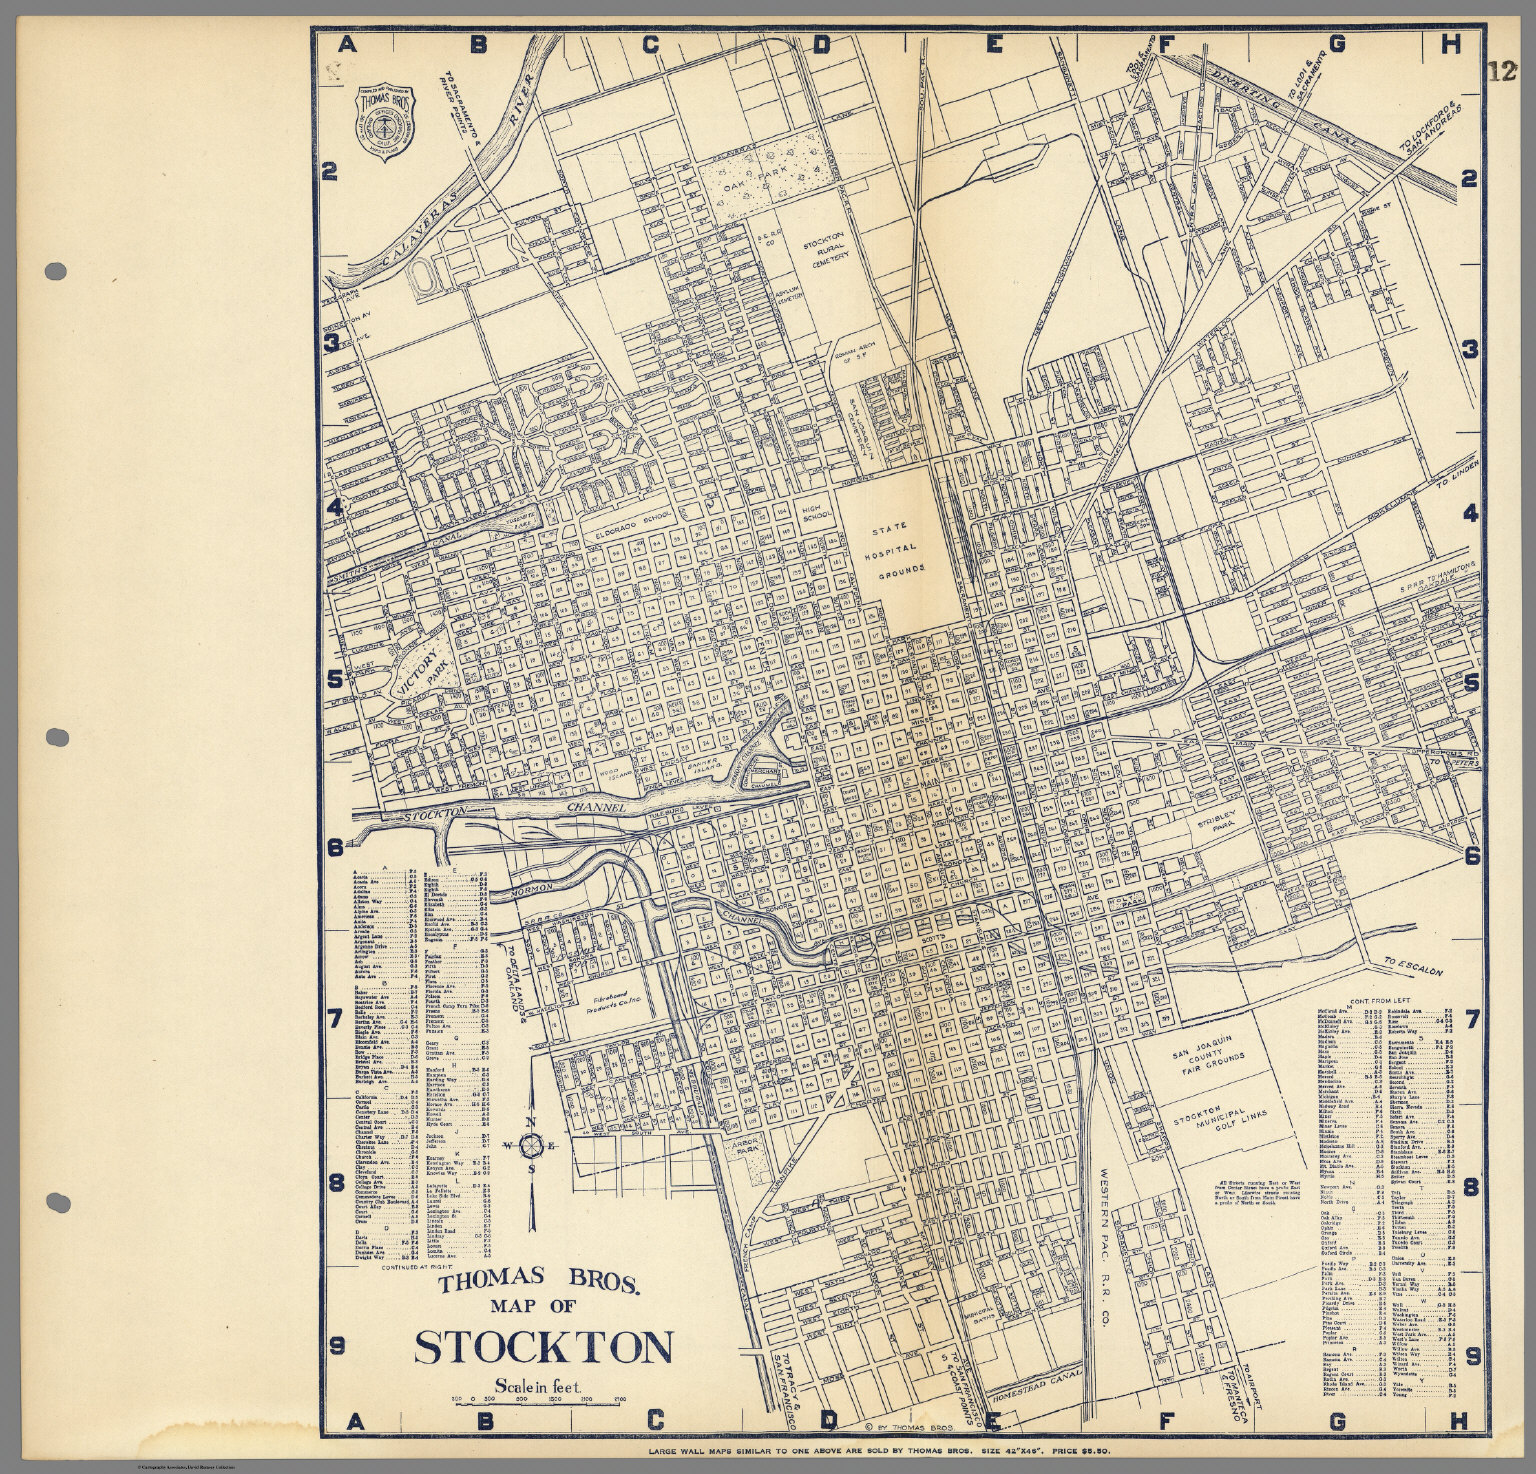 Thomas Bros Map of Stockton California David Rumsey Historical